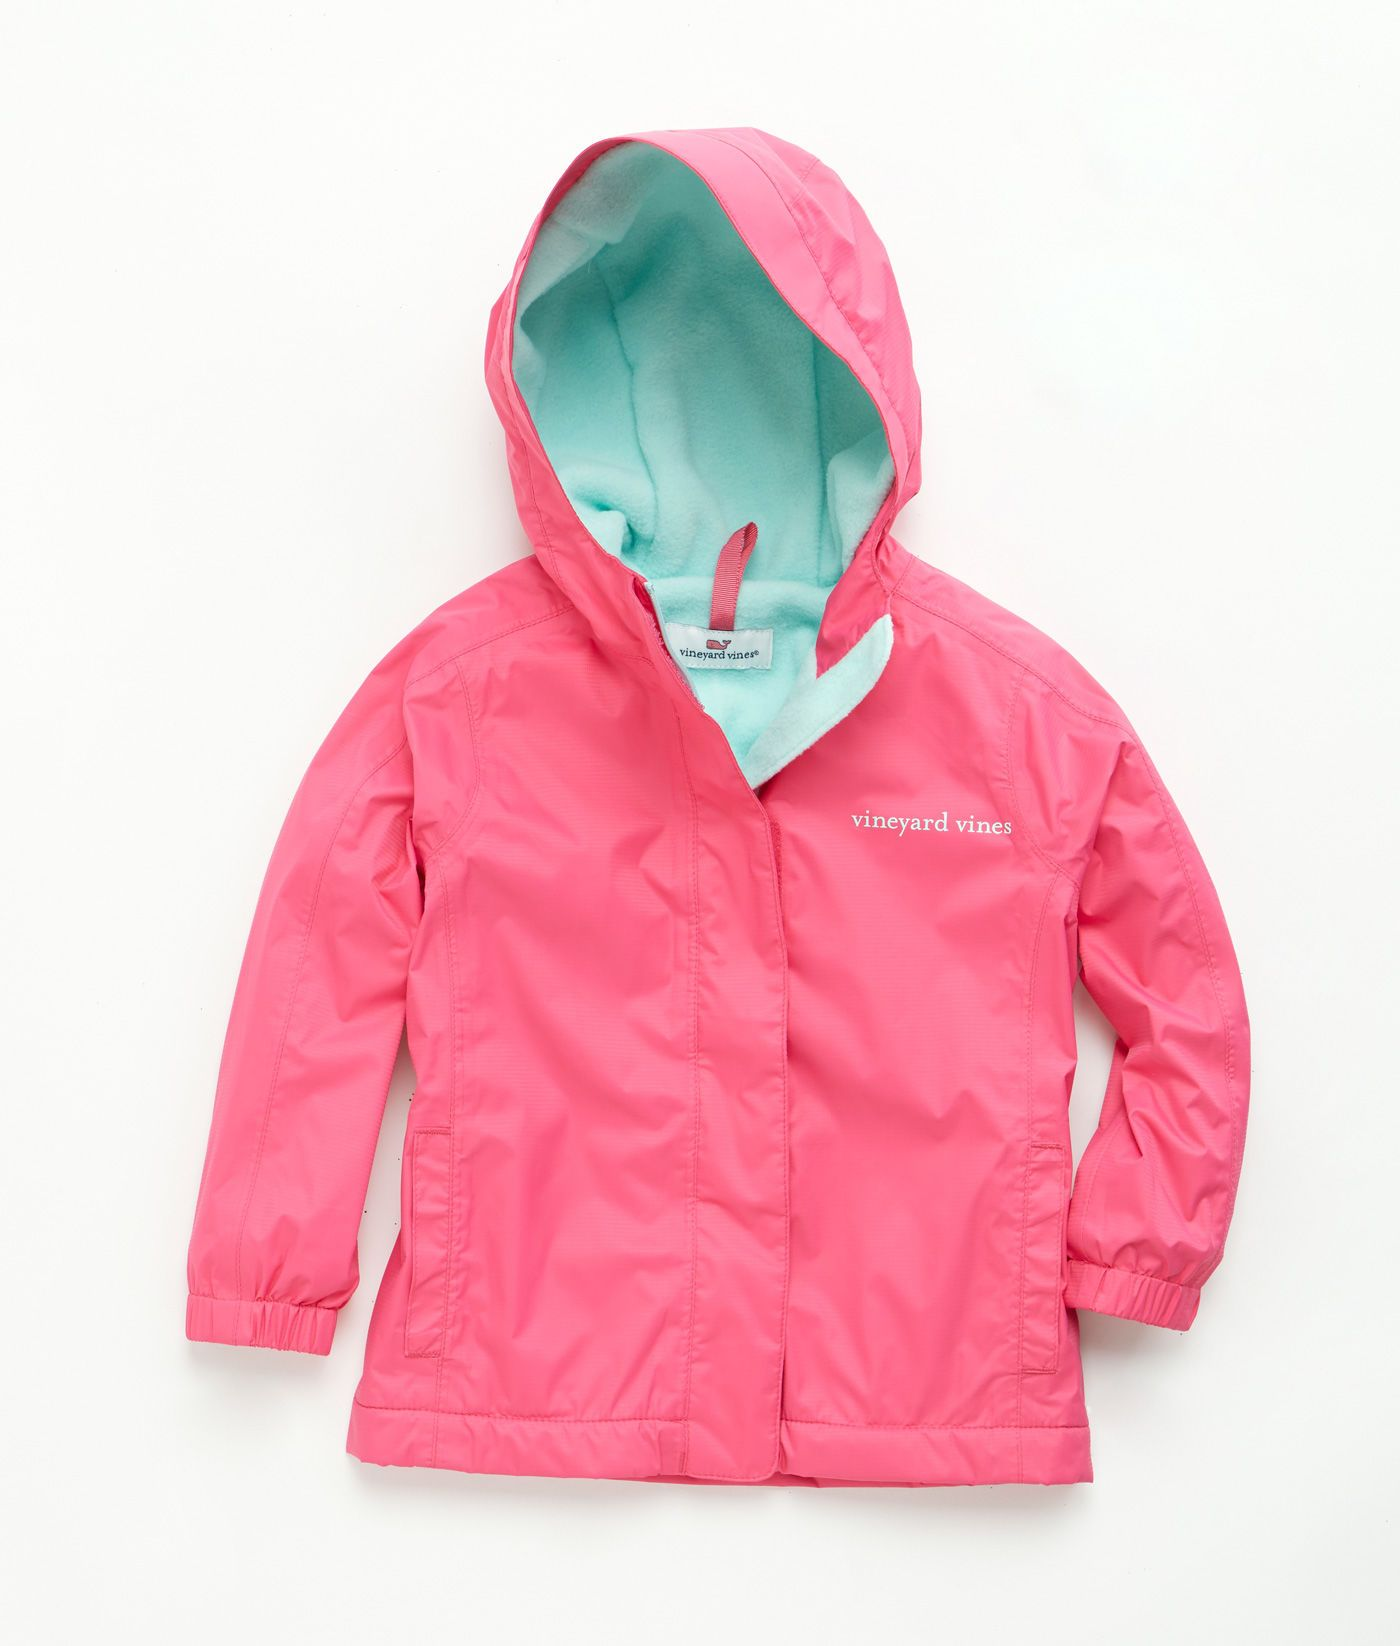 Shop Girls Fleece Lined Stow & Go at vineyard vines